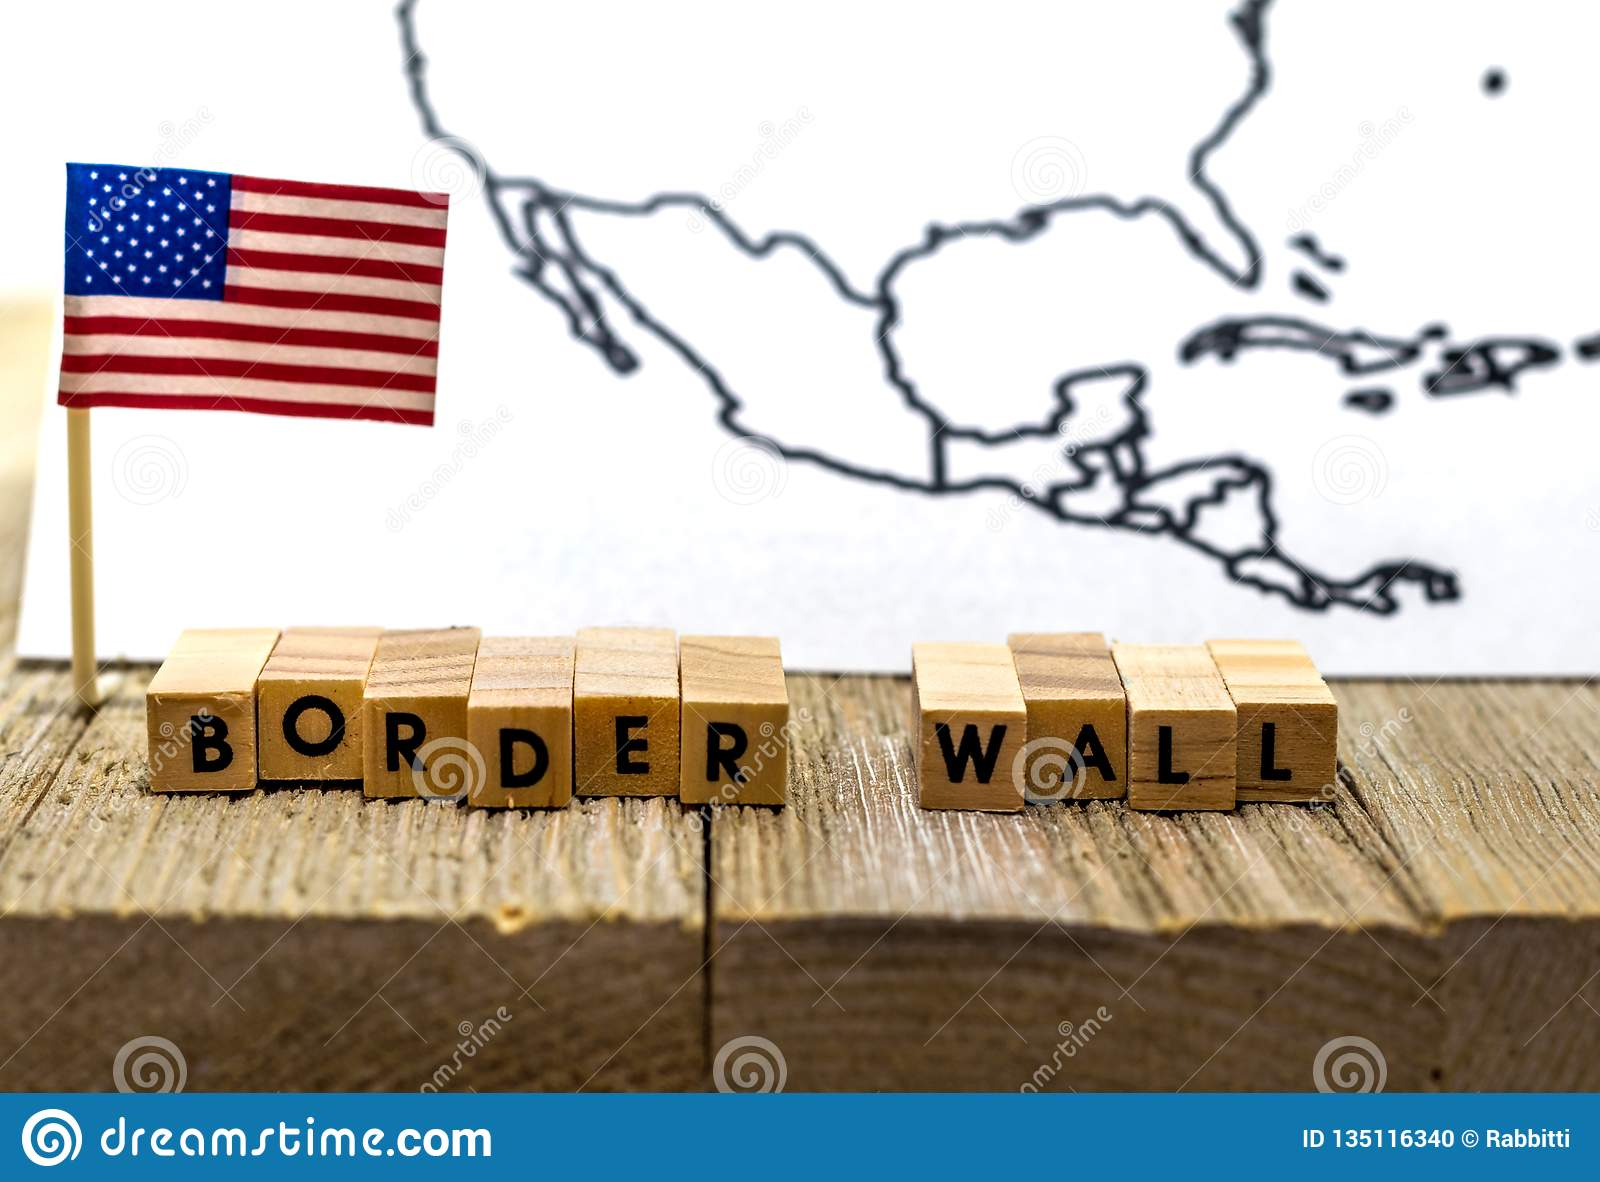 Border Wall USA concept with American flag on white background and wooden board